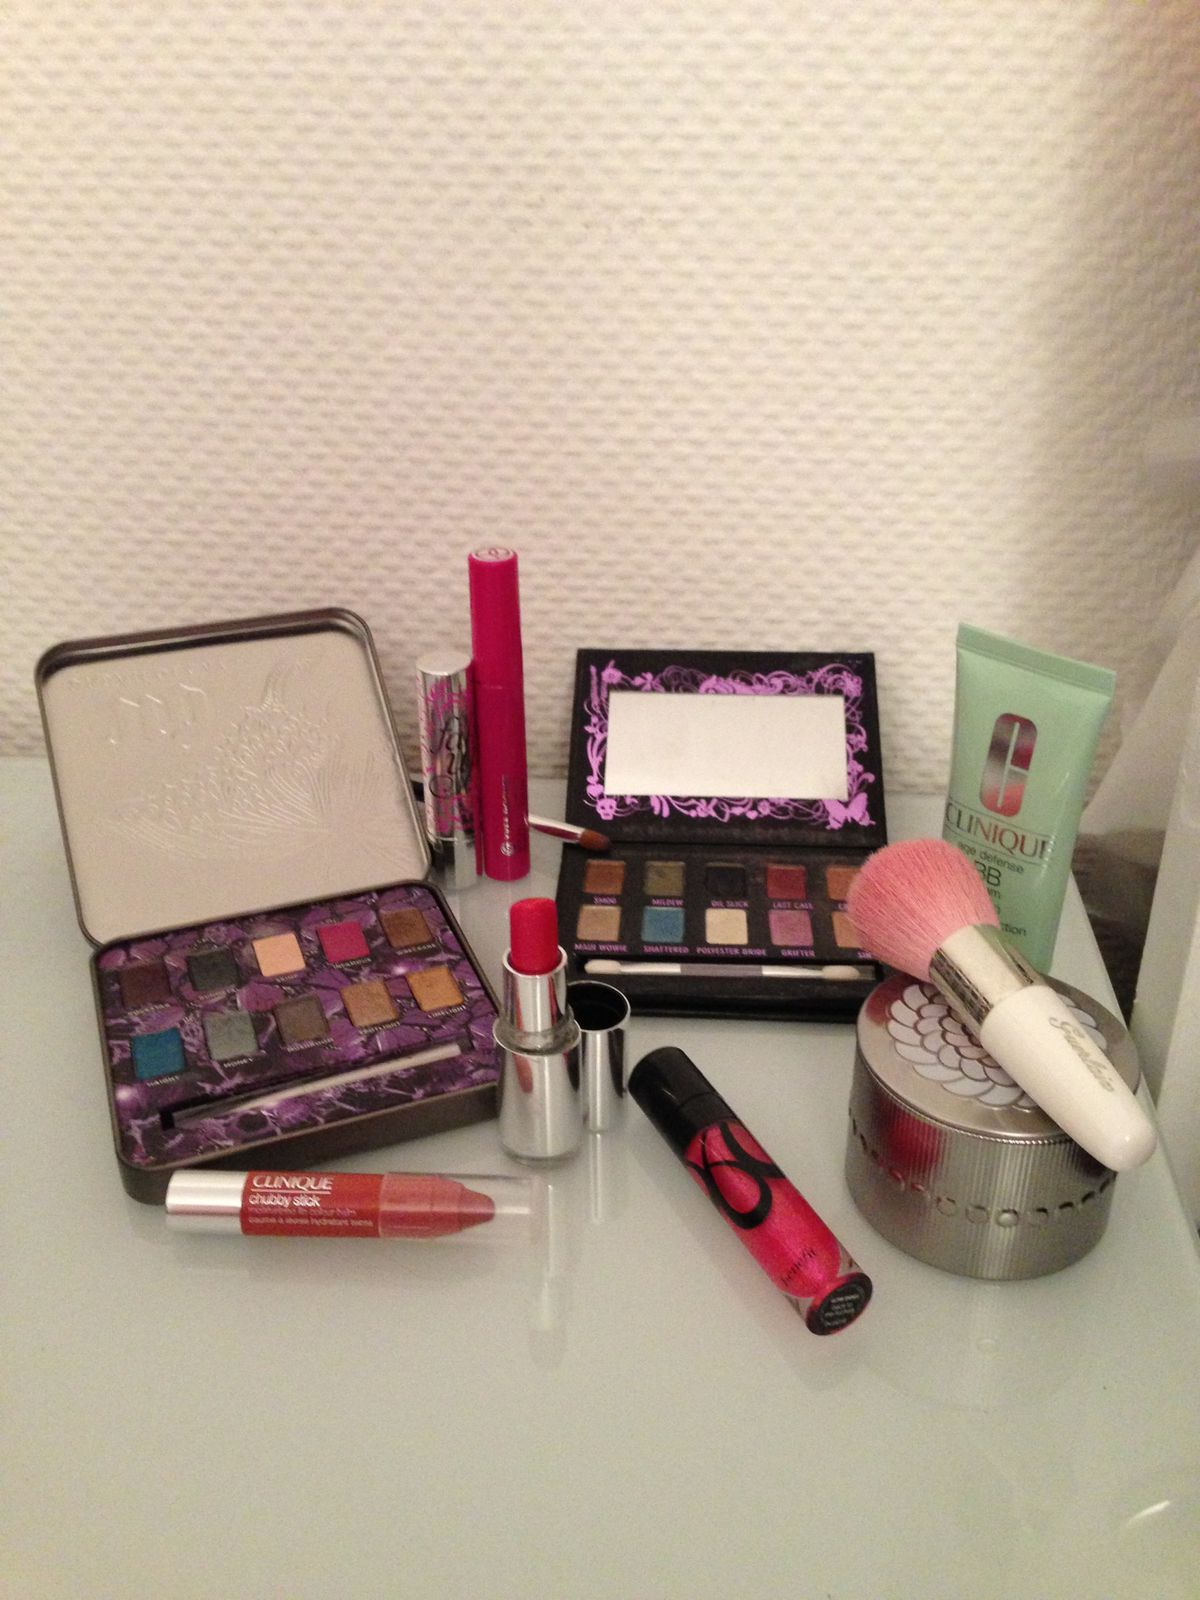 [Défi du lundi] Get ready with me - everyday makeup